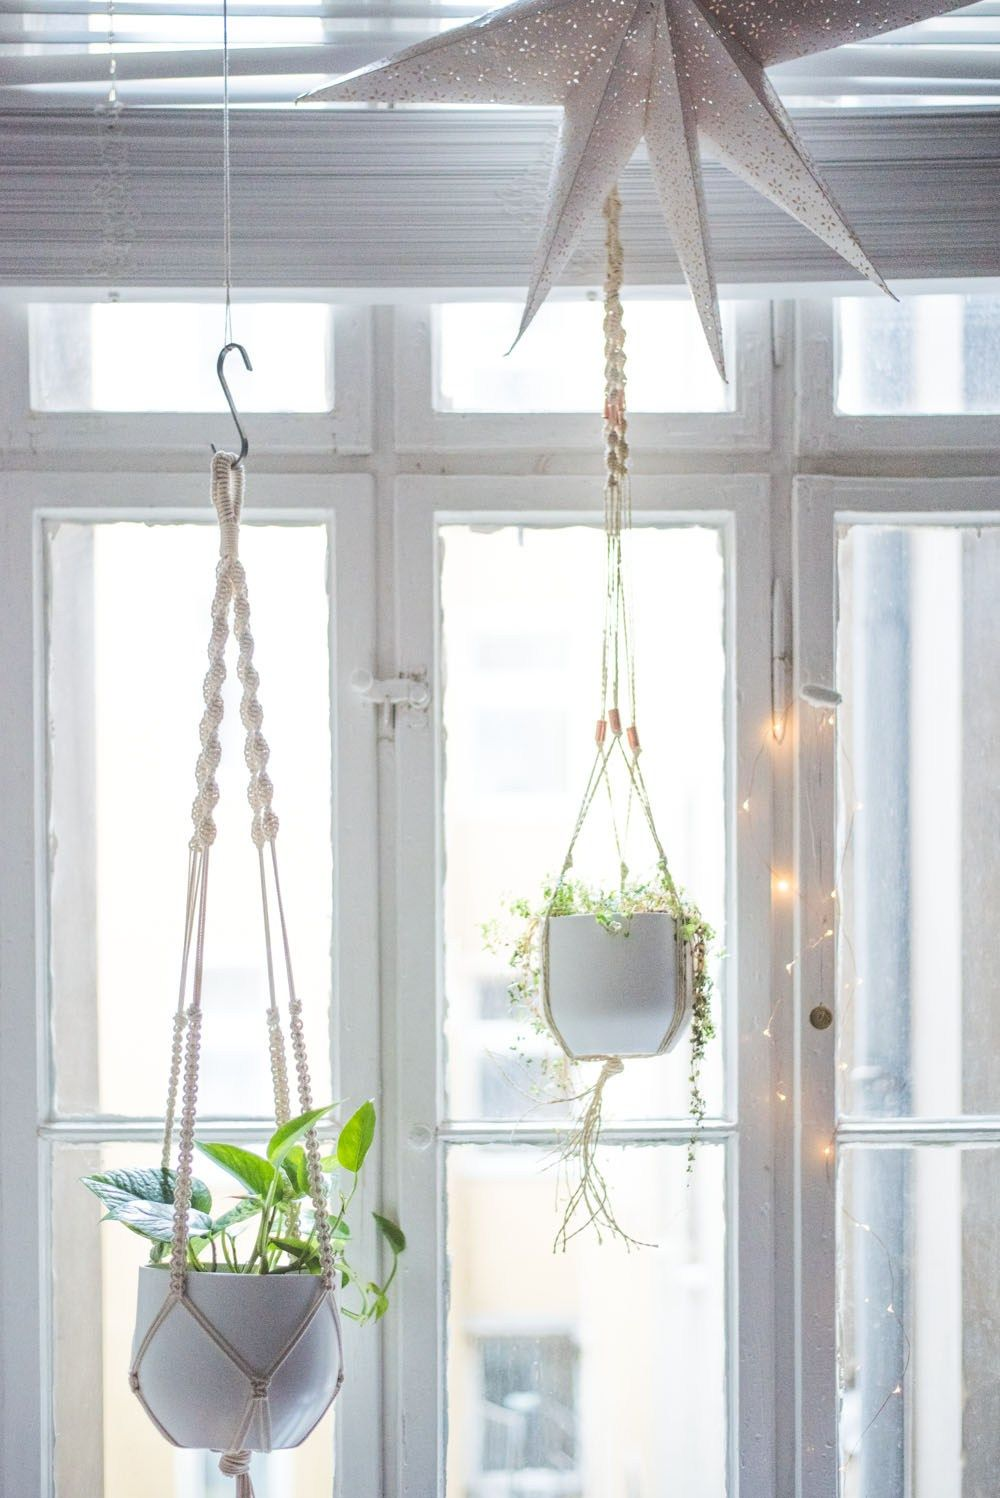 easy home diy macrame plant hanger tutorial diy basteln selbermachen pinterest pyssel. Black Bedroom Furniture Sets. Home Design Ideas